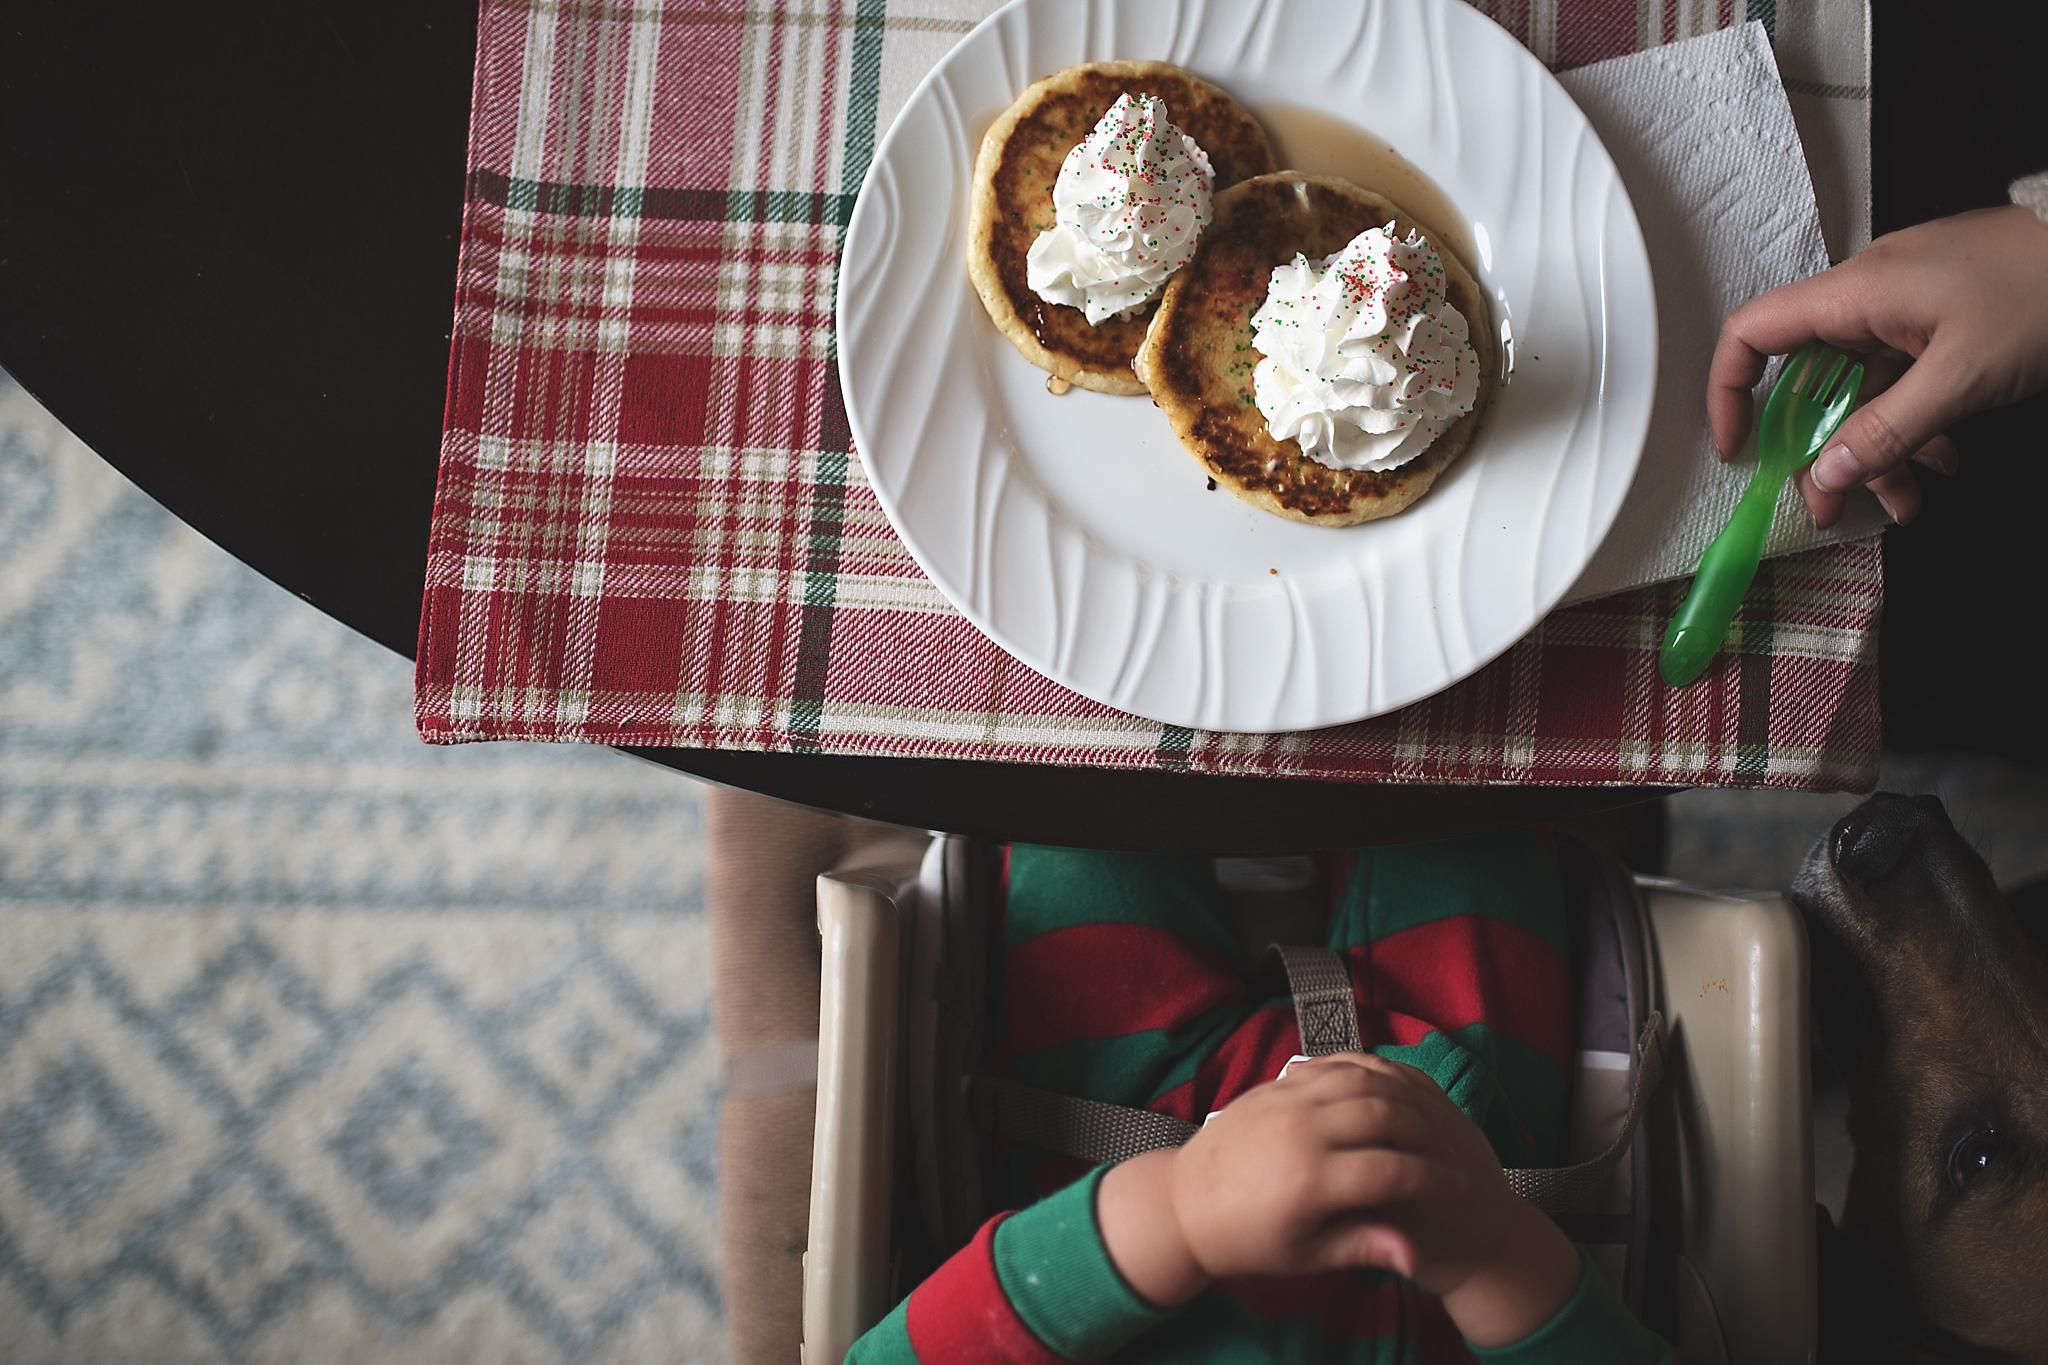 at home lifestyle photography michigan - pancakes